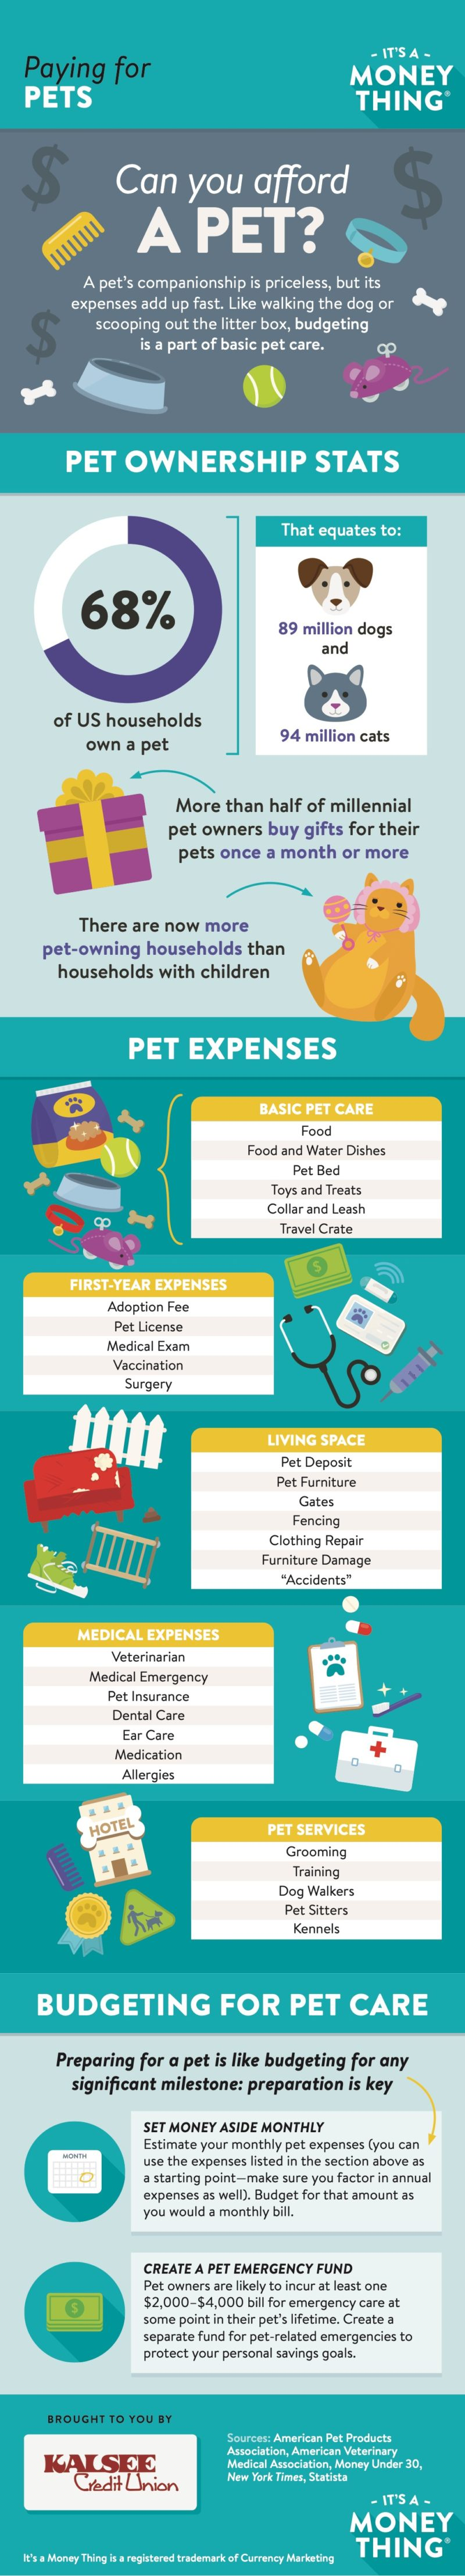 Paying for pets infographic, click for transcription